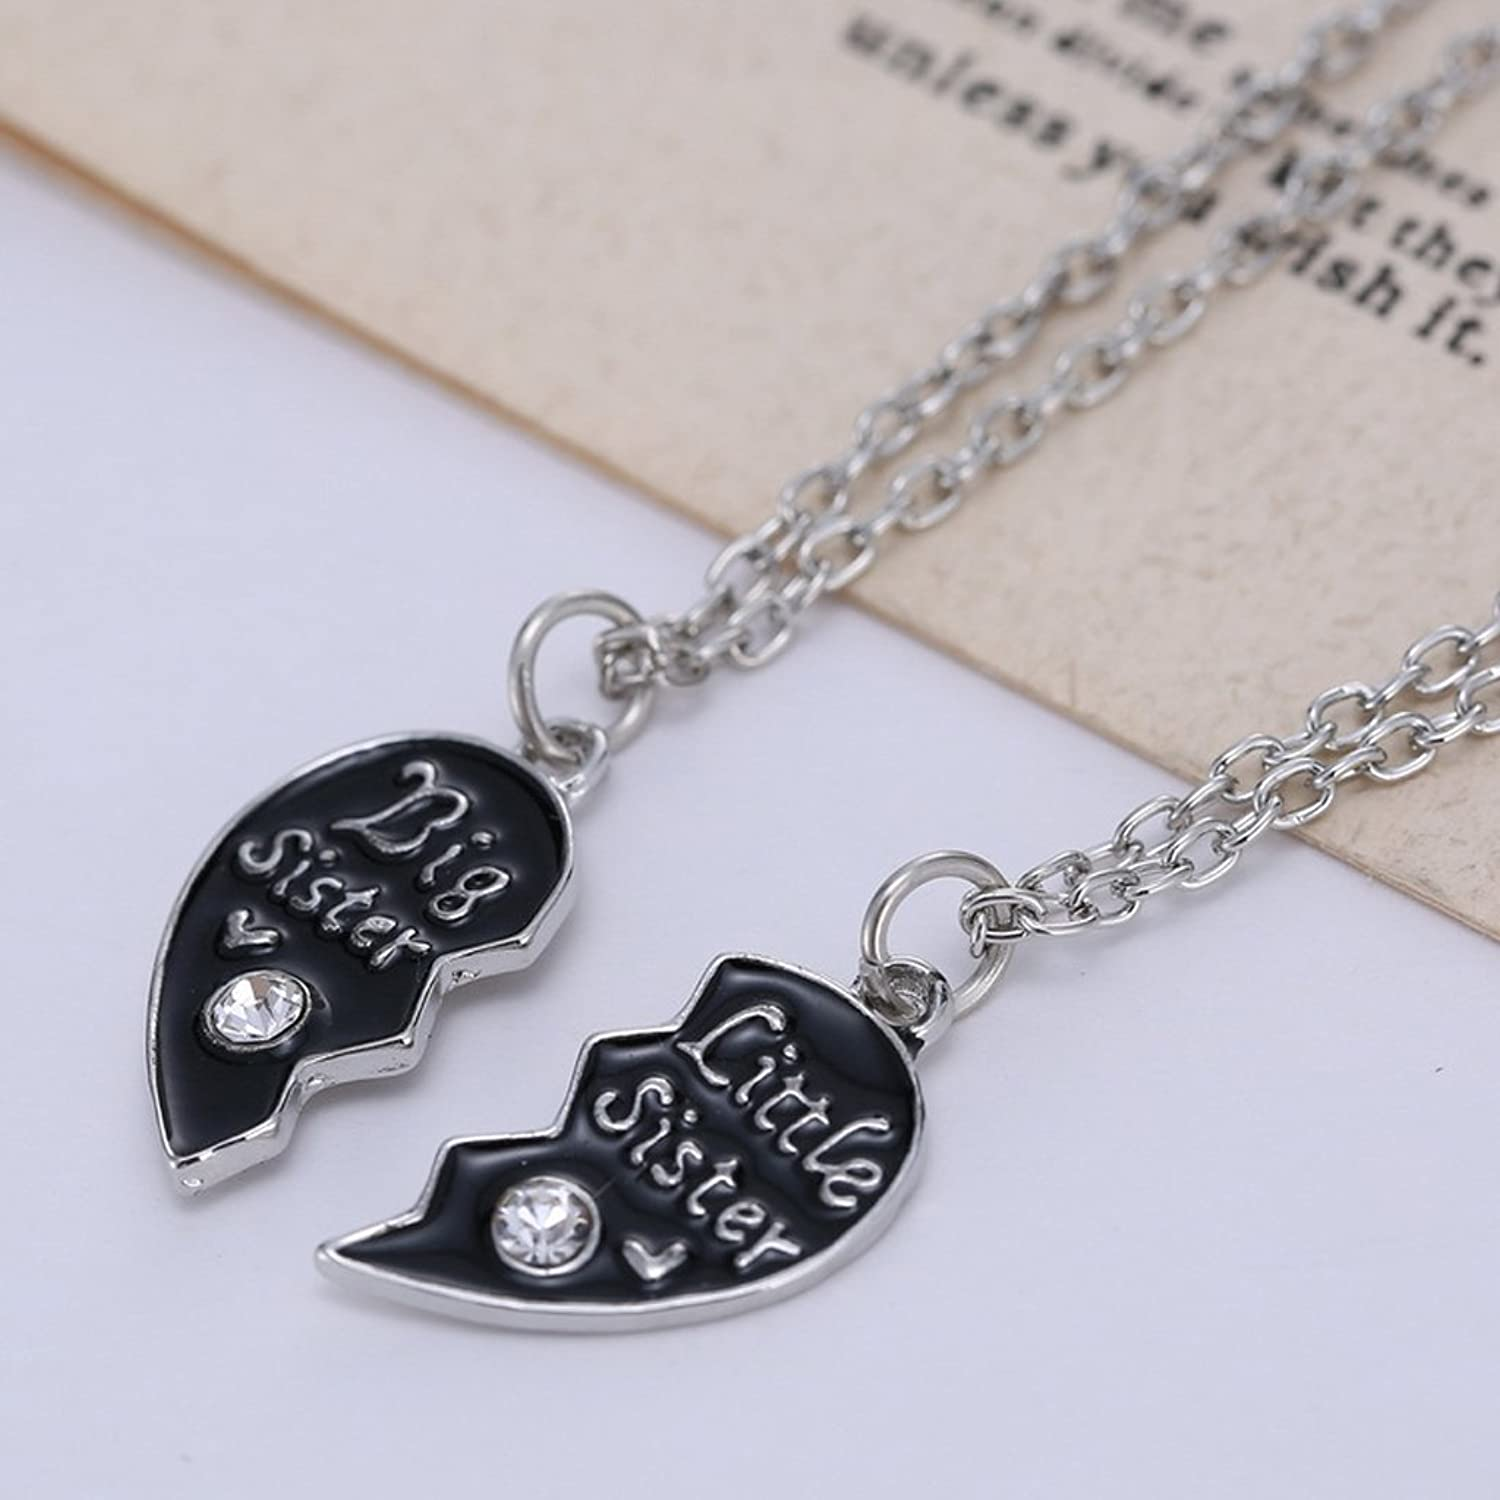 Buy generic sisters love combine heart pendant necklace chain silver buy generic sisters love combine heart pendant necklace chain silver black jewel for women online at low prices in india amazon jewellery store amazon mozeypictures Choice Image